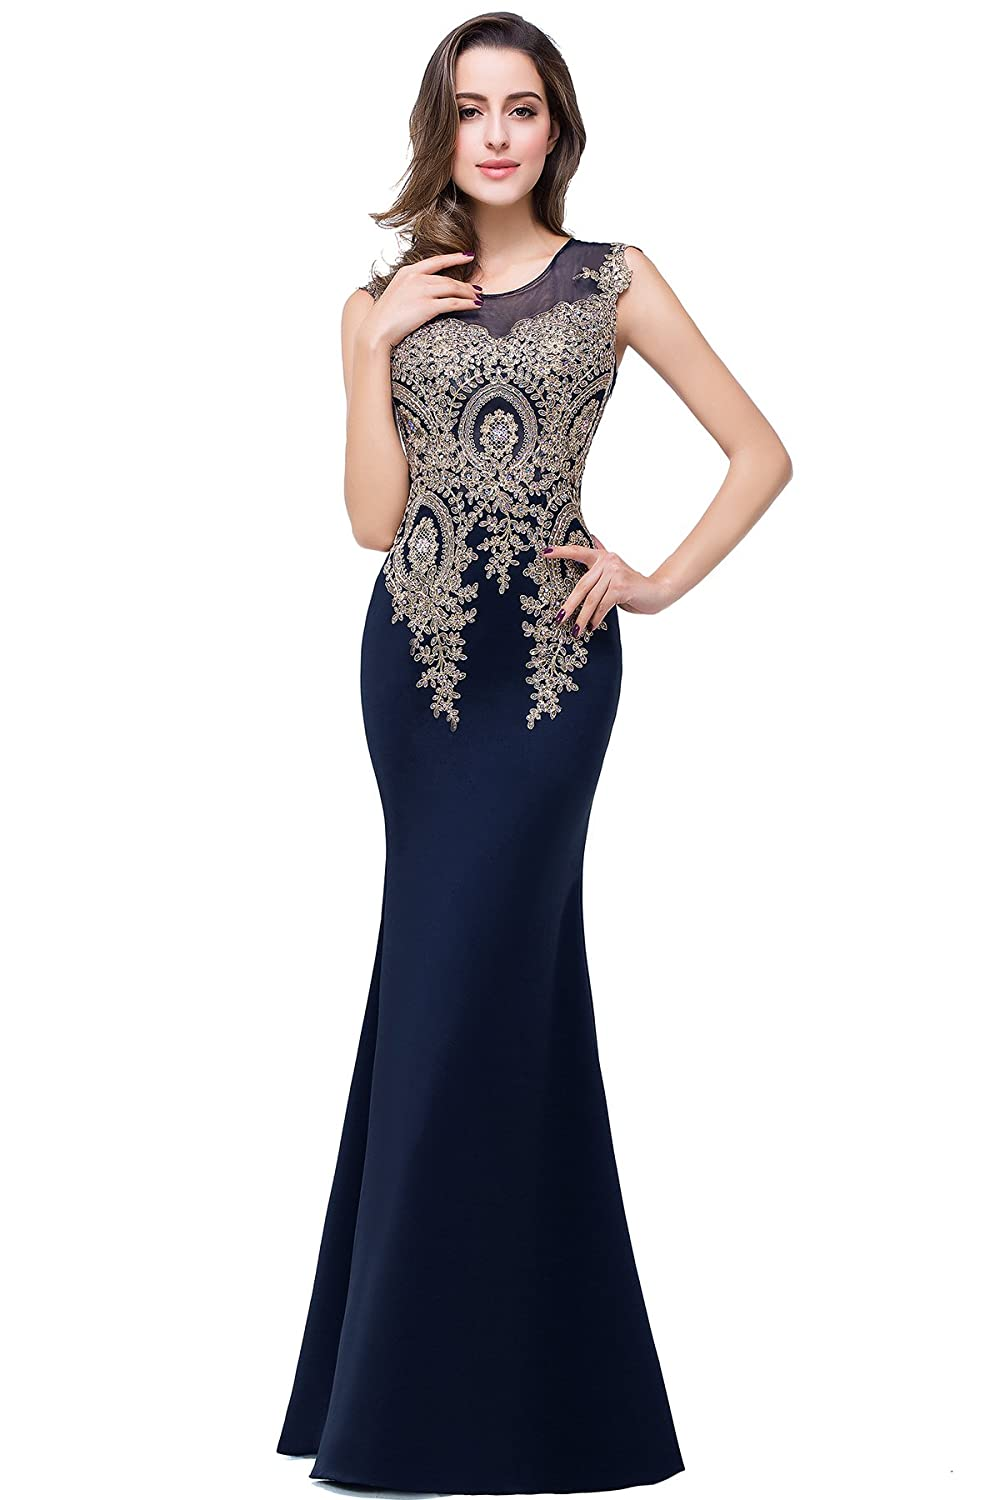 e489089628e Mermaid Beaded evening Dress Black lace formal dress Sexy party dress.  Occasion Formal